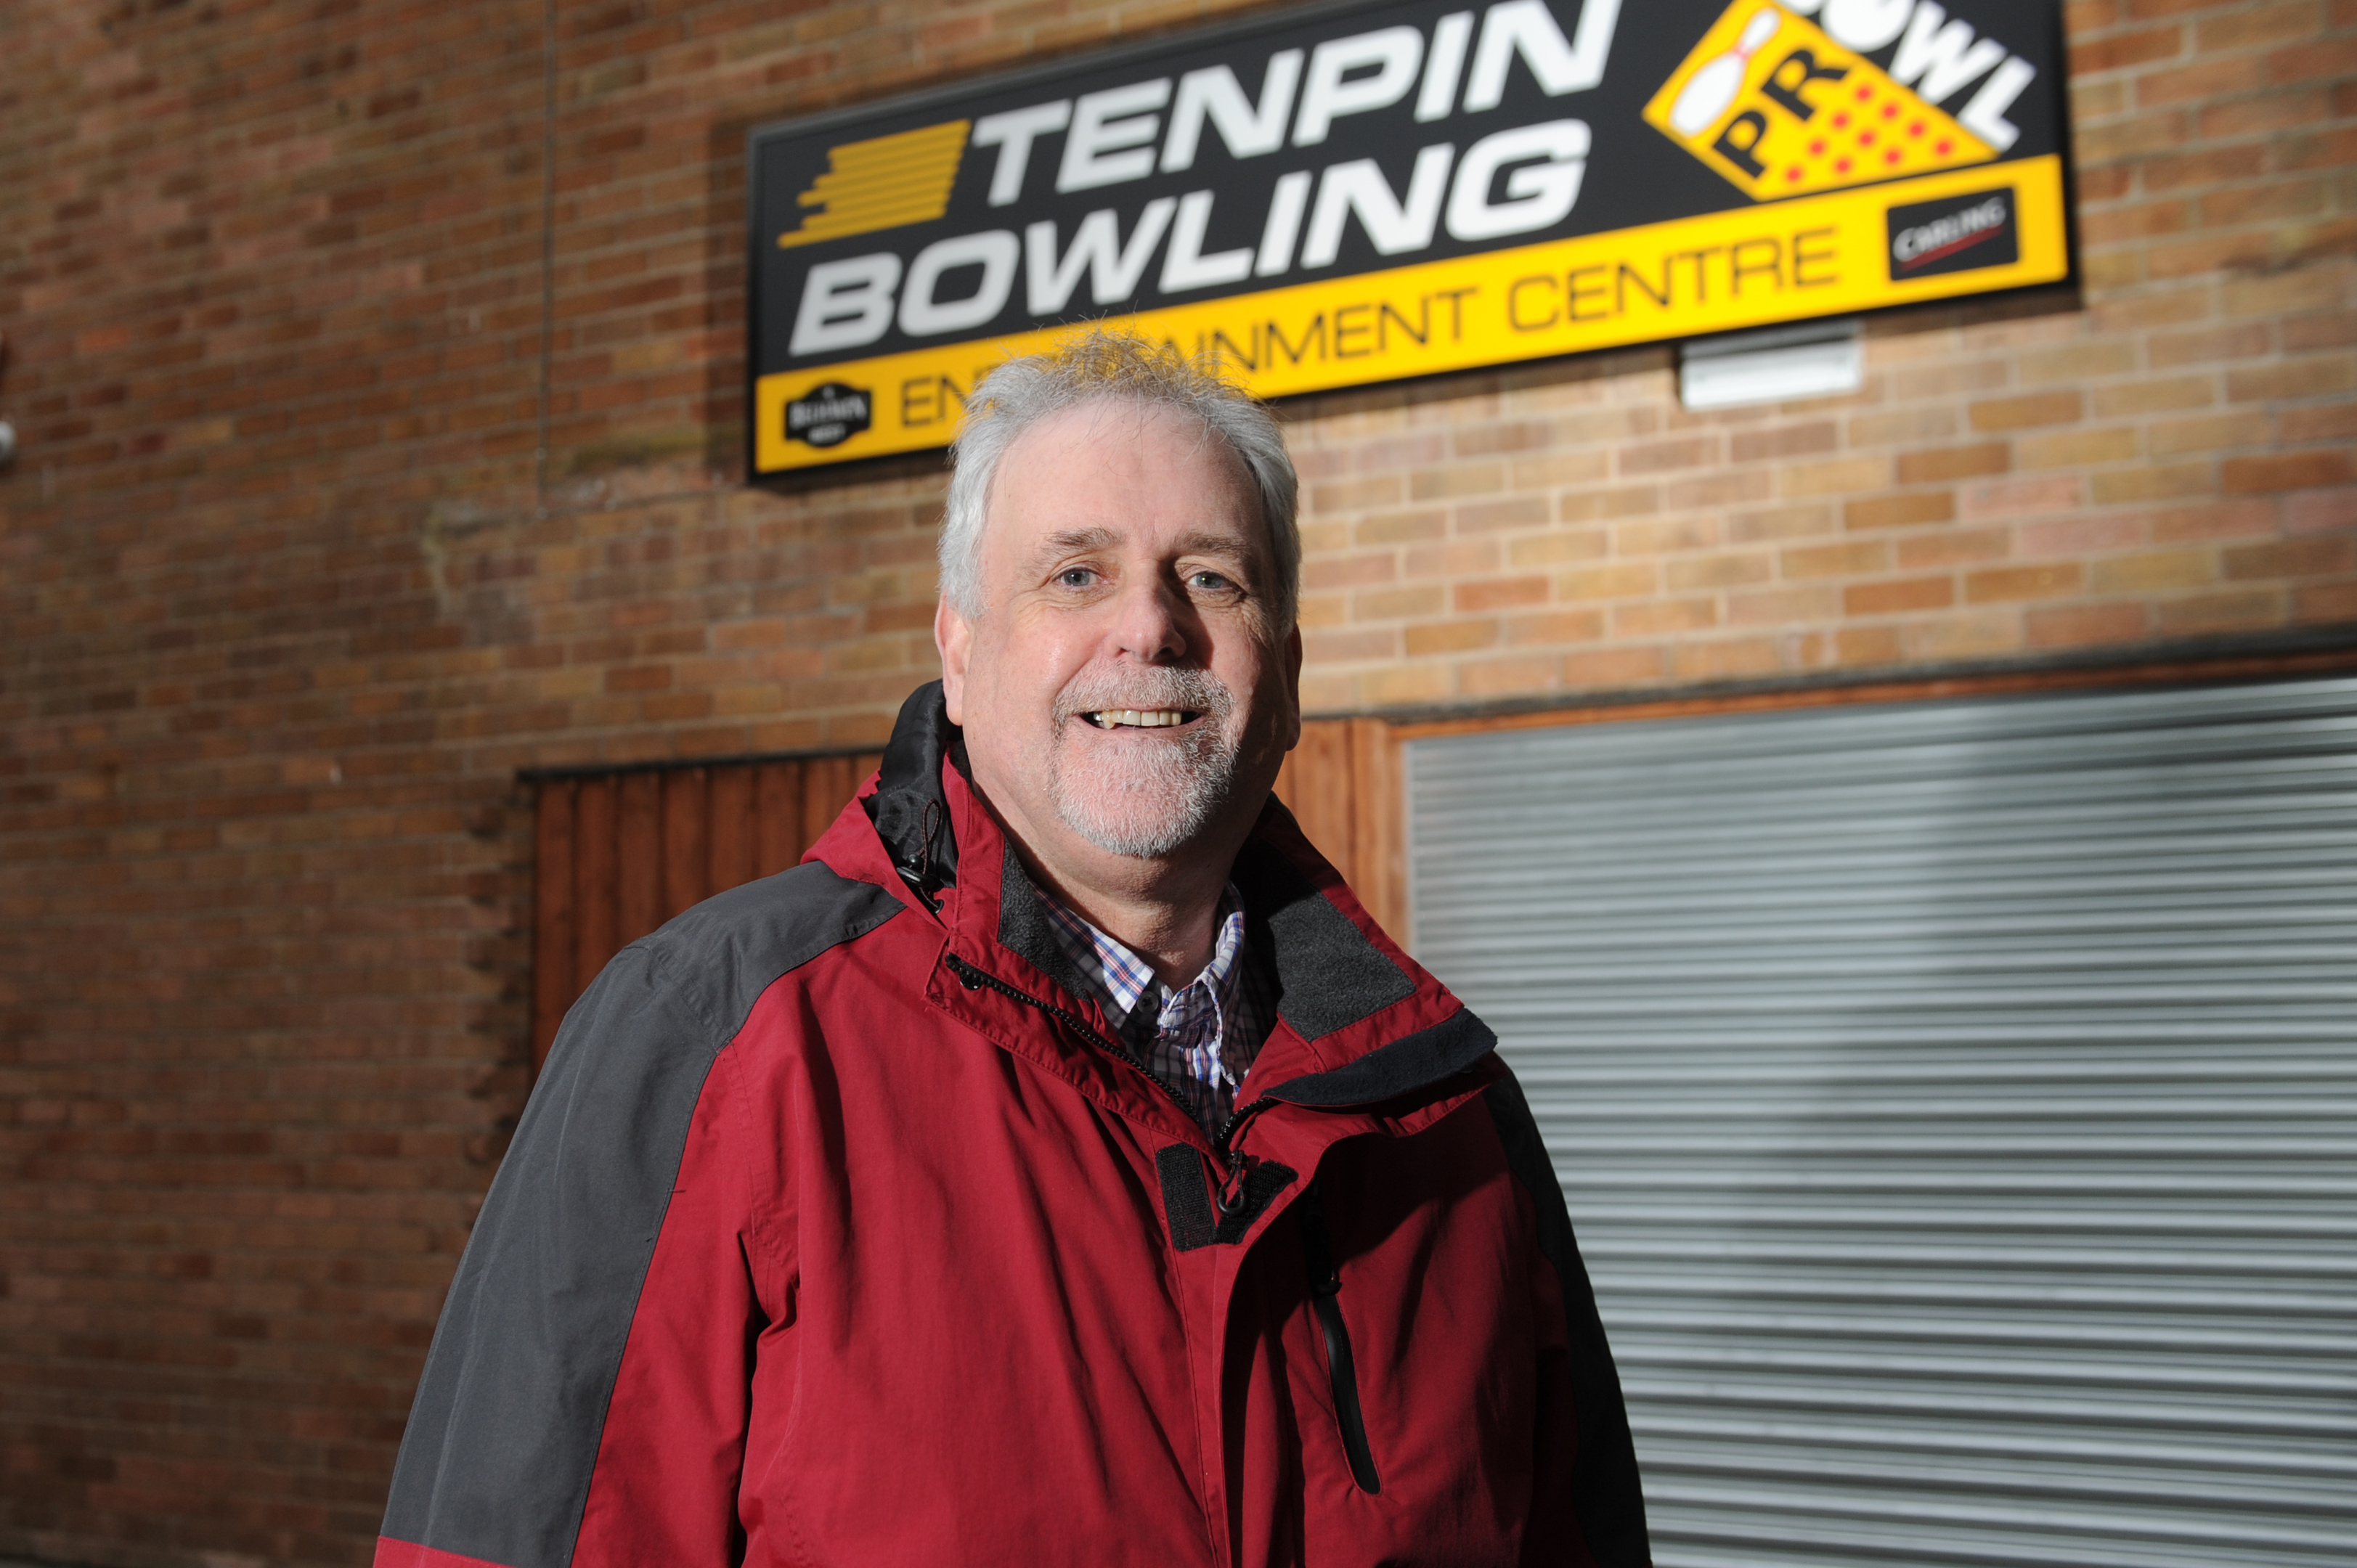 Councillor Bill Brown is pleased to see the return of bowling in Glenrothes